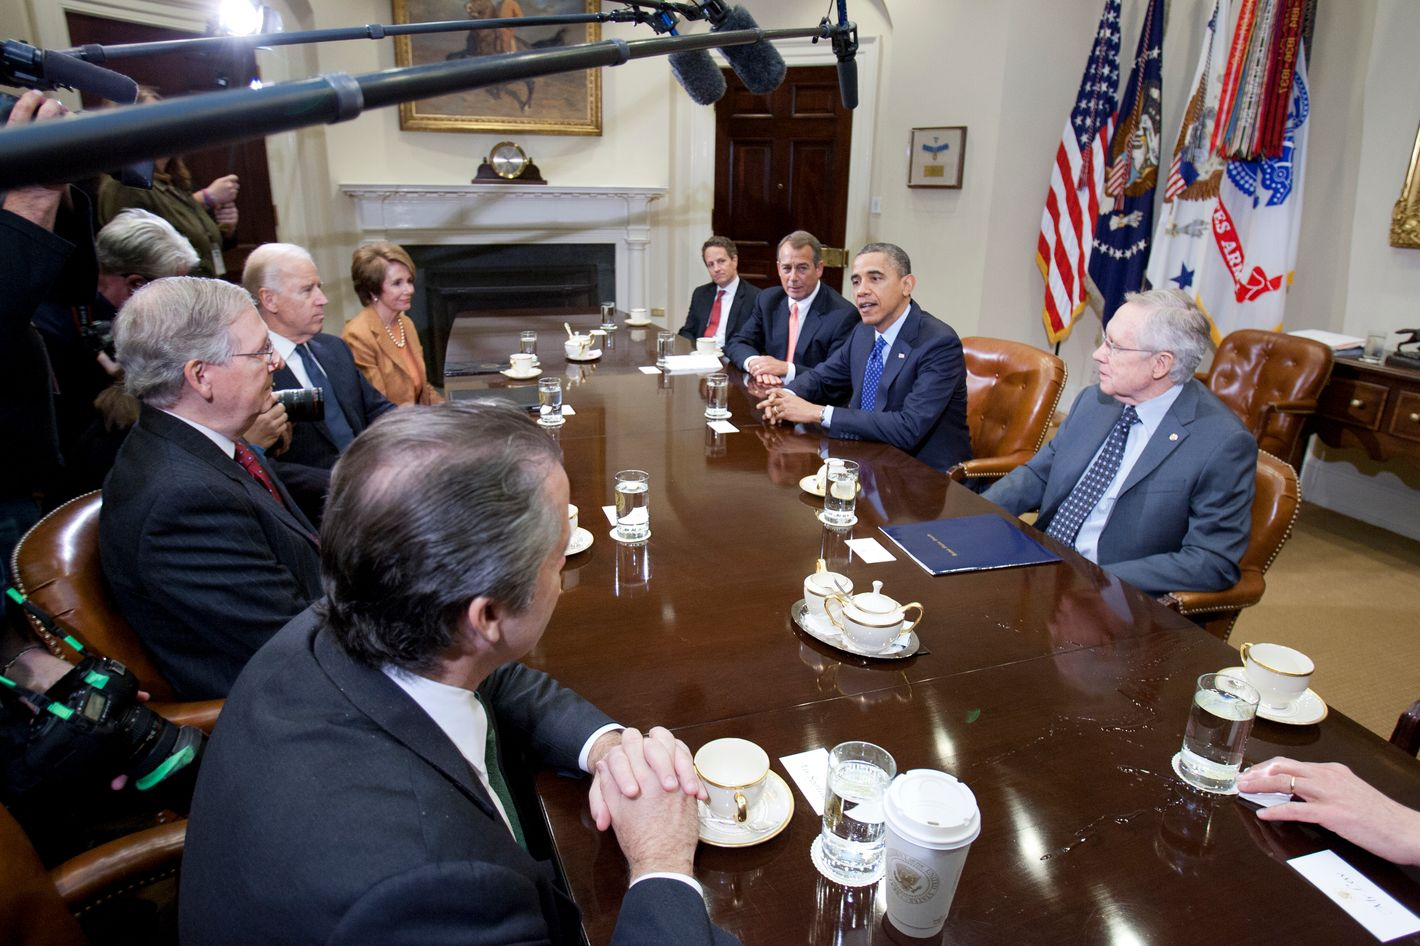 US President Barack Obama(2nd R) and Vice President Joe Biden (across) meet at the White House with Senate Majority Leader Harry Reid (D-NV), Senate Minority Leader Mitch McConnell (R-KY), Speaker John Boehner (R-OH) House Minority Leader Nancy Pelosi (D-CA)and other cabinet members on November 16, 2012 in Washington,DC. Obama said Friday that Democrats and Republicans needed to make 'tough compromises' in order to overcome divisions over deficit reduction and avoid the fiscal cliff.